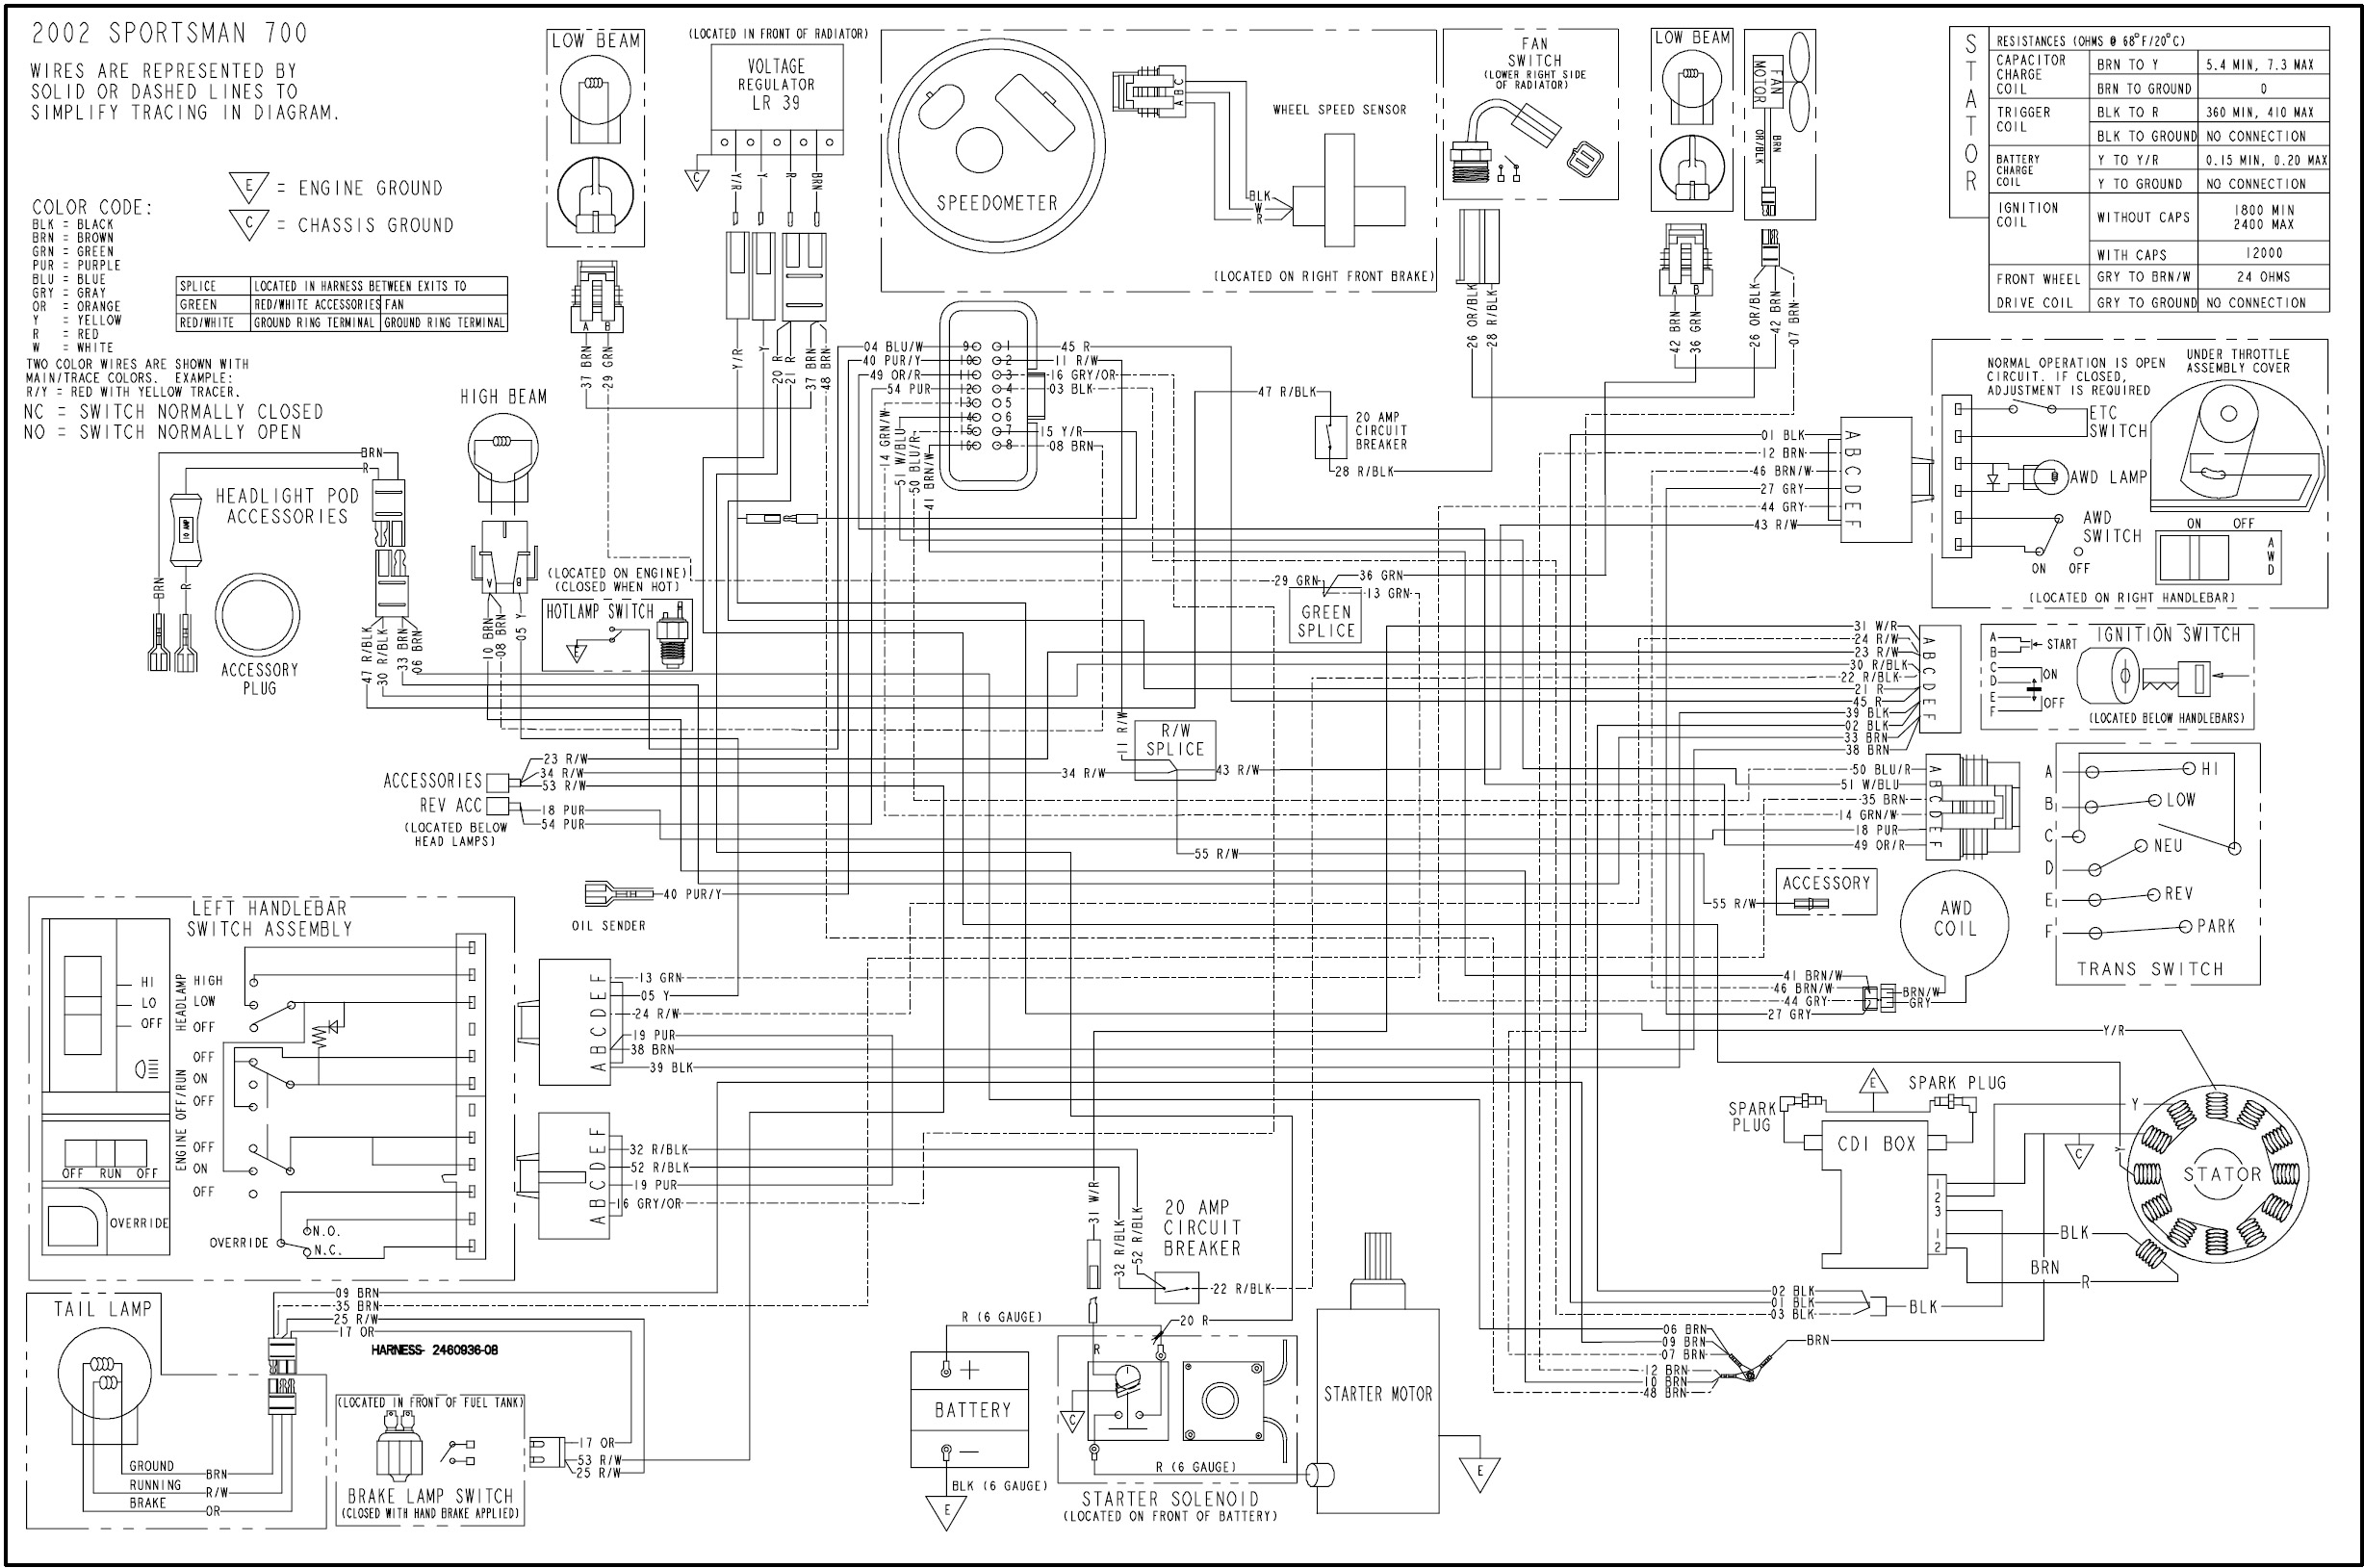 wd_700_02 2003 600 sportsman no spark! polaris atv forum Polaris Ignition Wiring Diagram at crackthecode.co